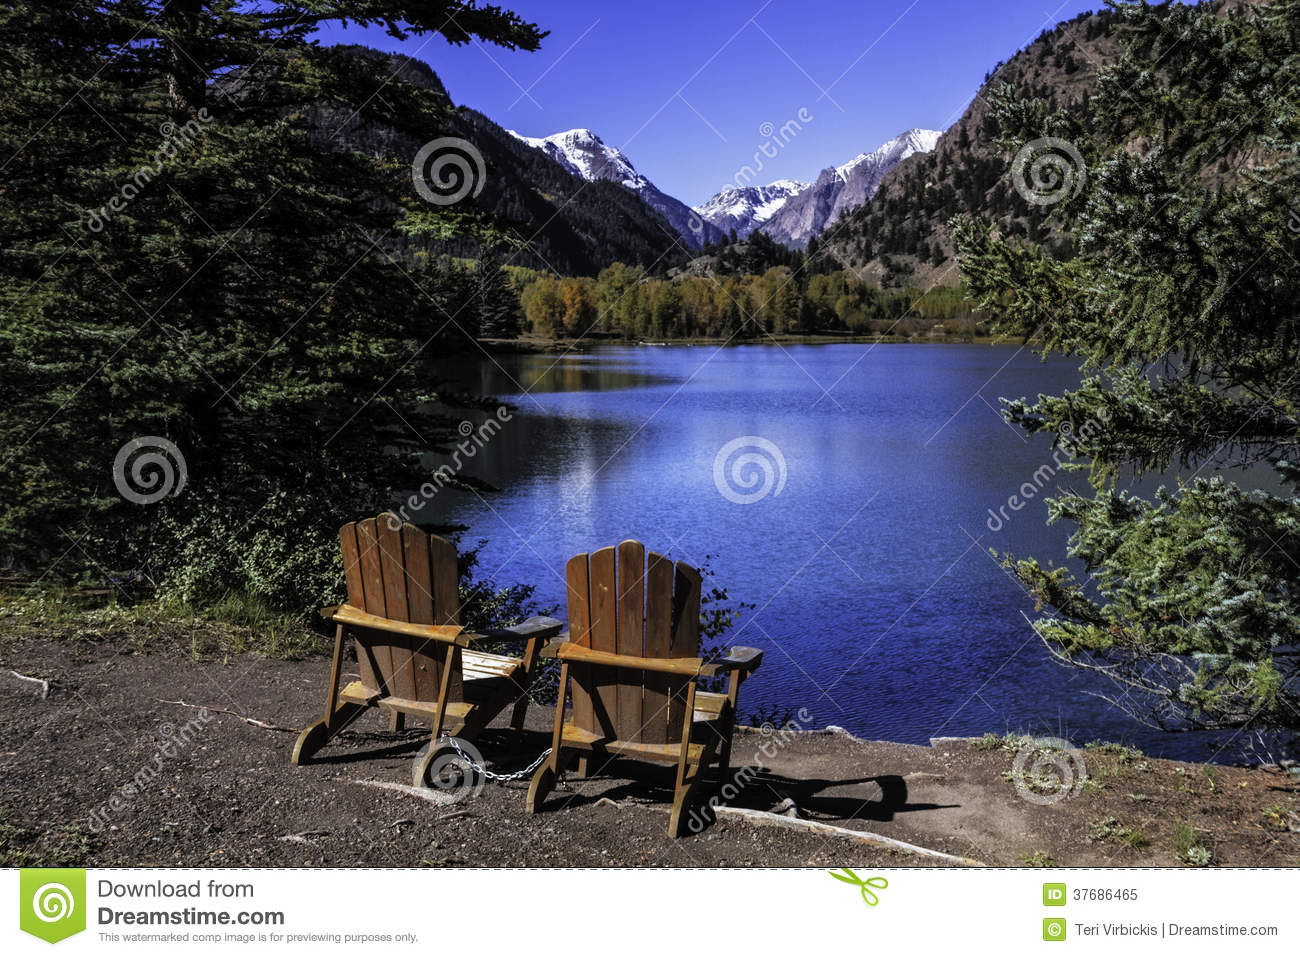 pair of adirondack chairs sitting by lake